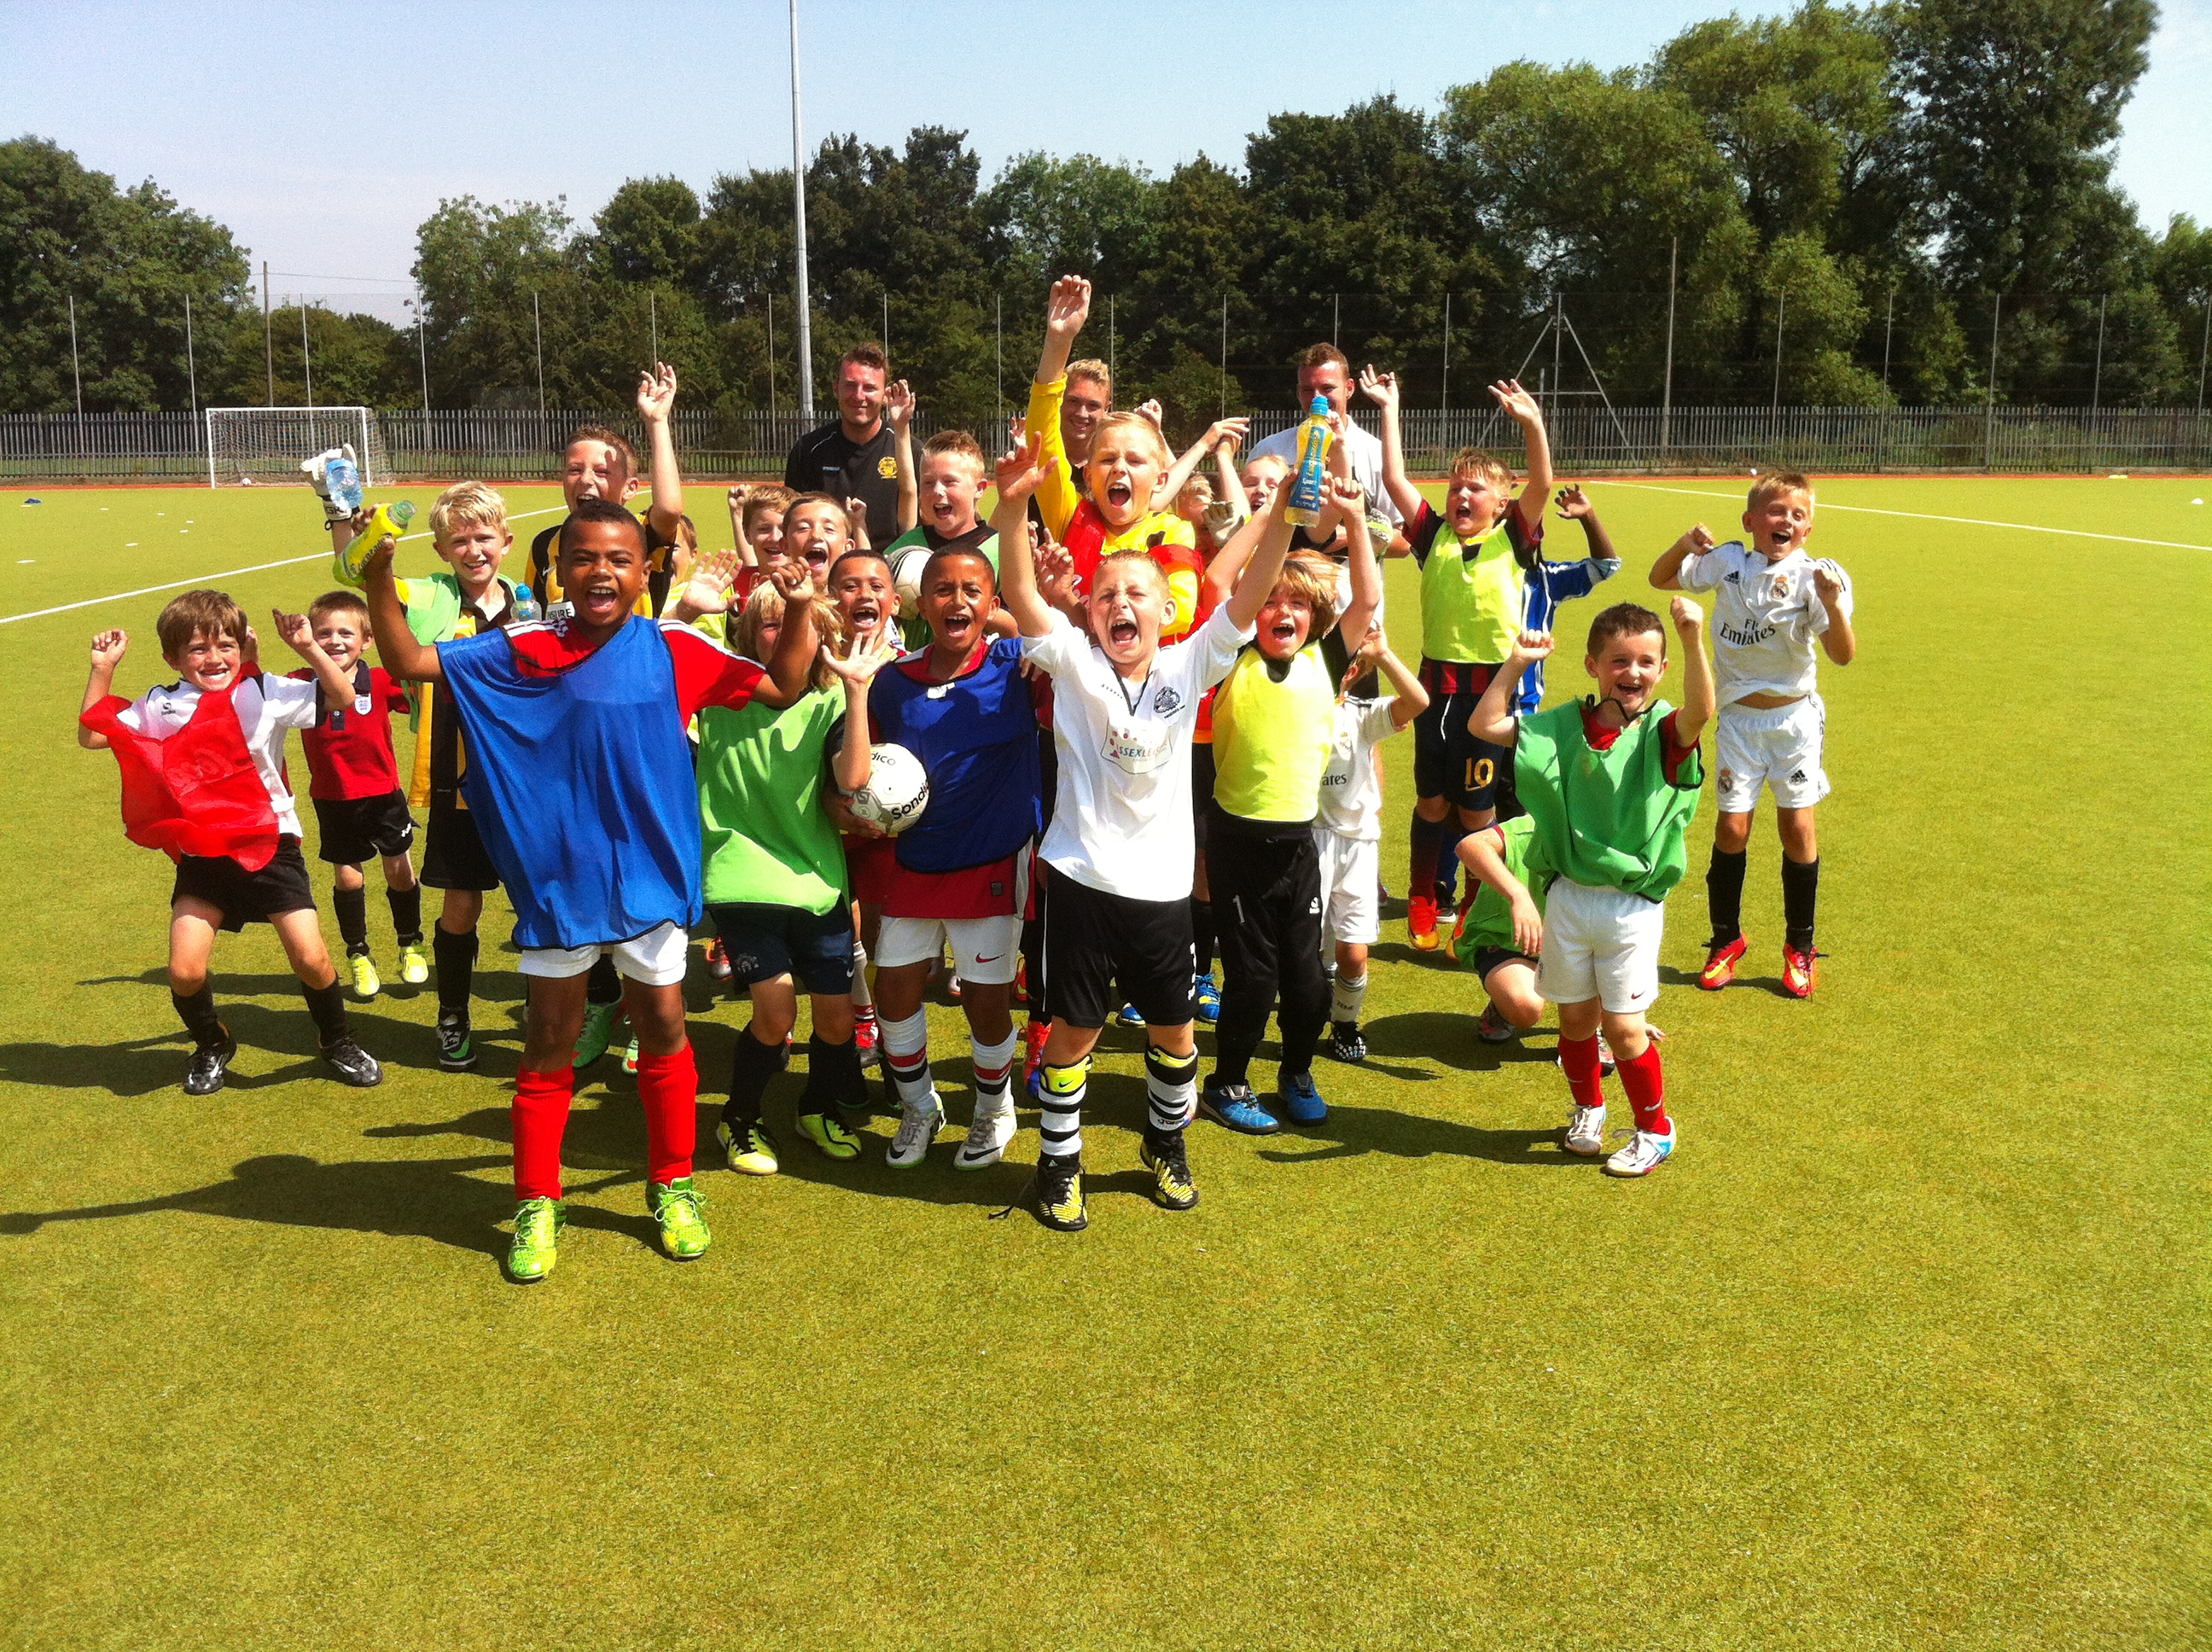 Ace Coaching at Educoach – School Holiday Soccer Schools